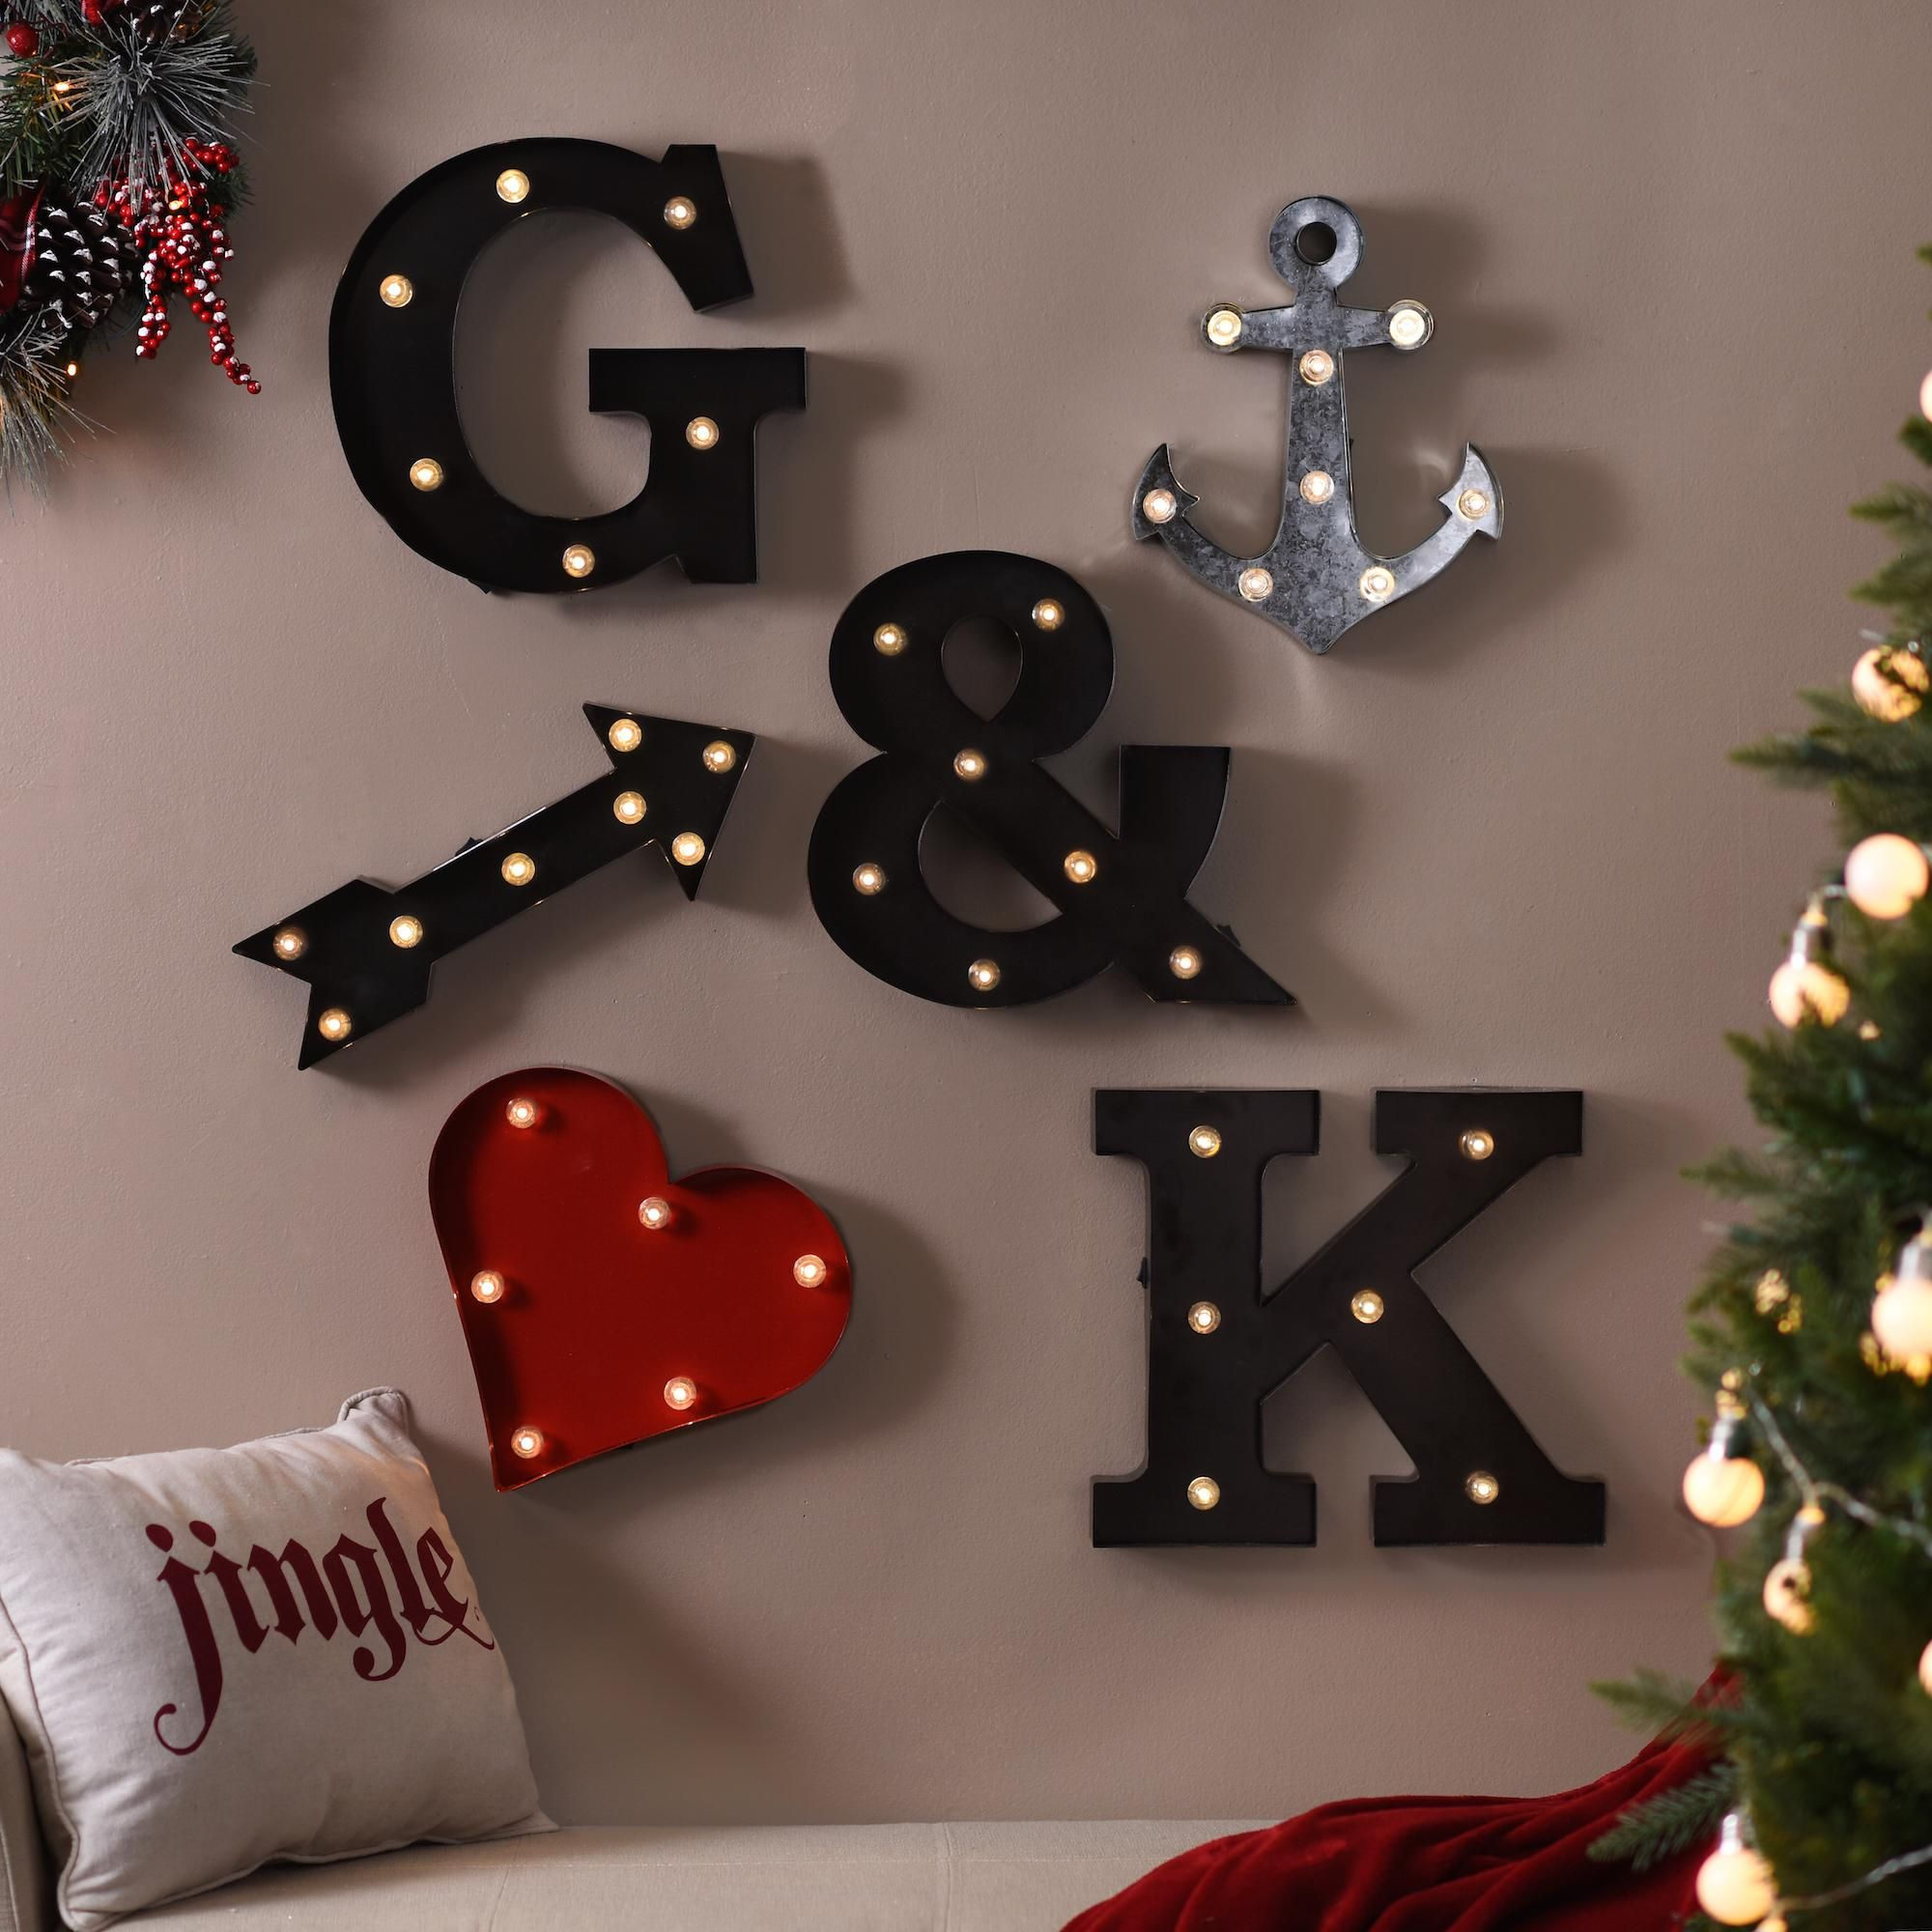 Spruce up your wall decor with LED Letters and Icons! These marquee lights add a fun touch to your normal decor. Shop now and save 50% off select styles through January 24.